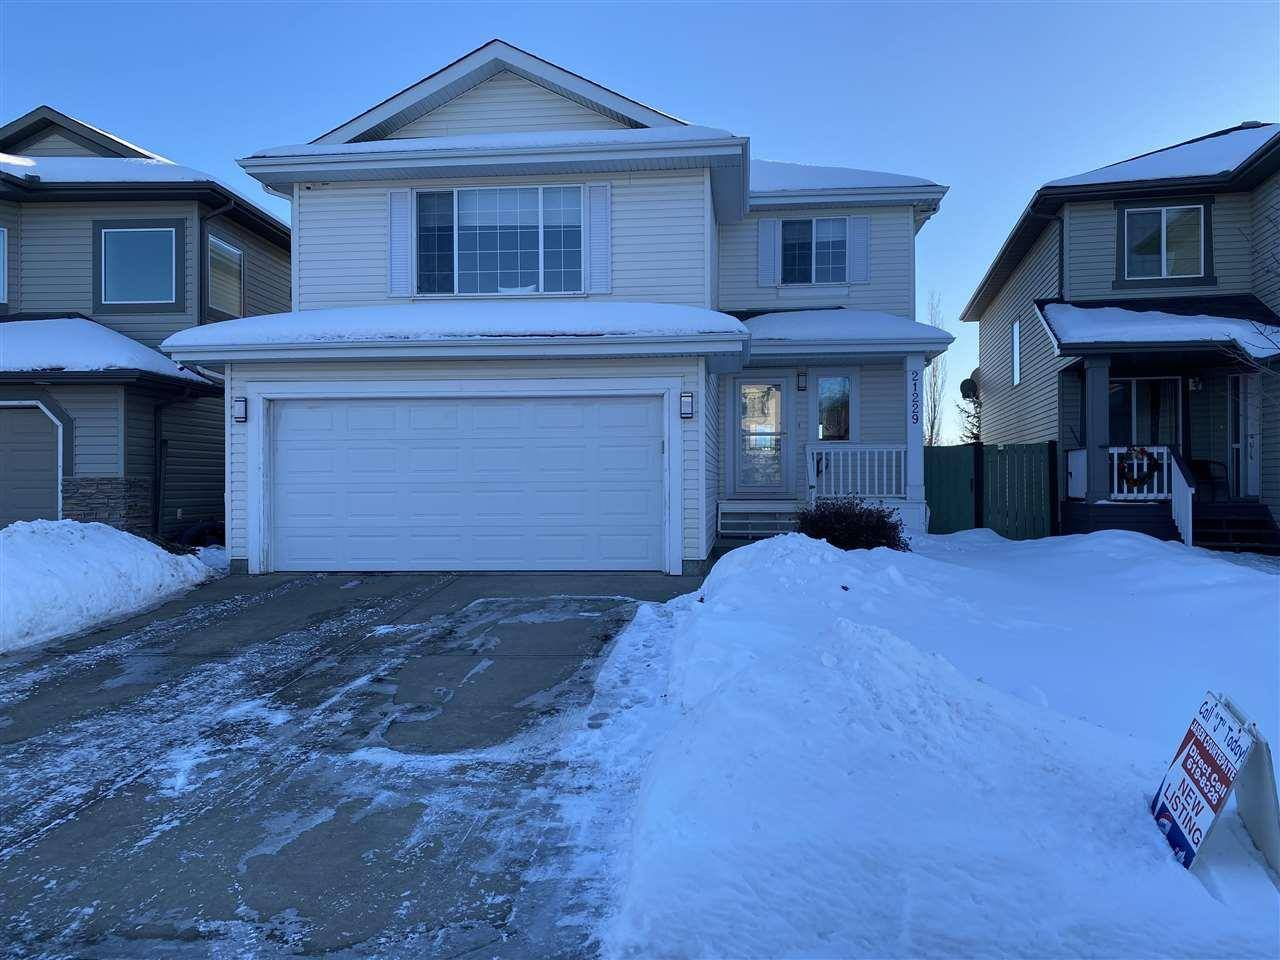 House for sale at 21229 88a Ave Nw Edmonton Alberta - MLS: E4186822